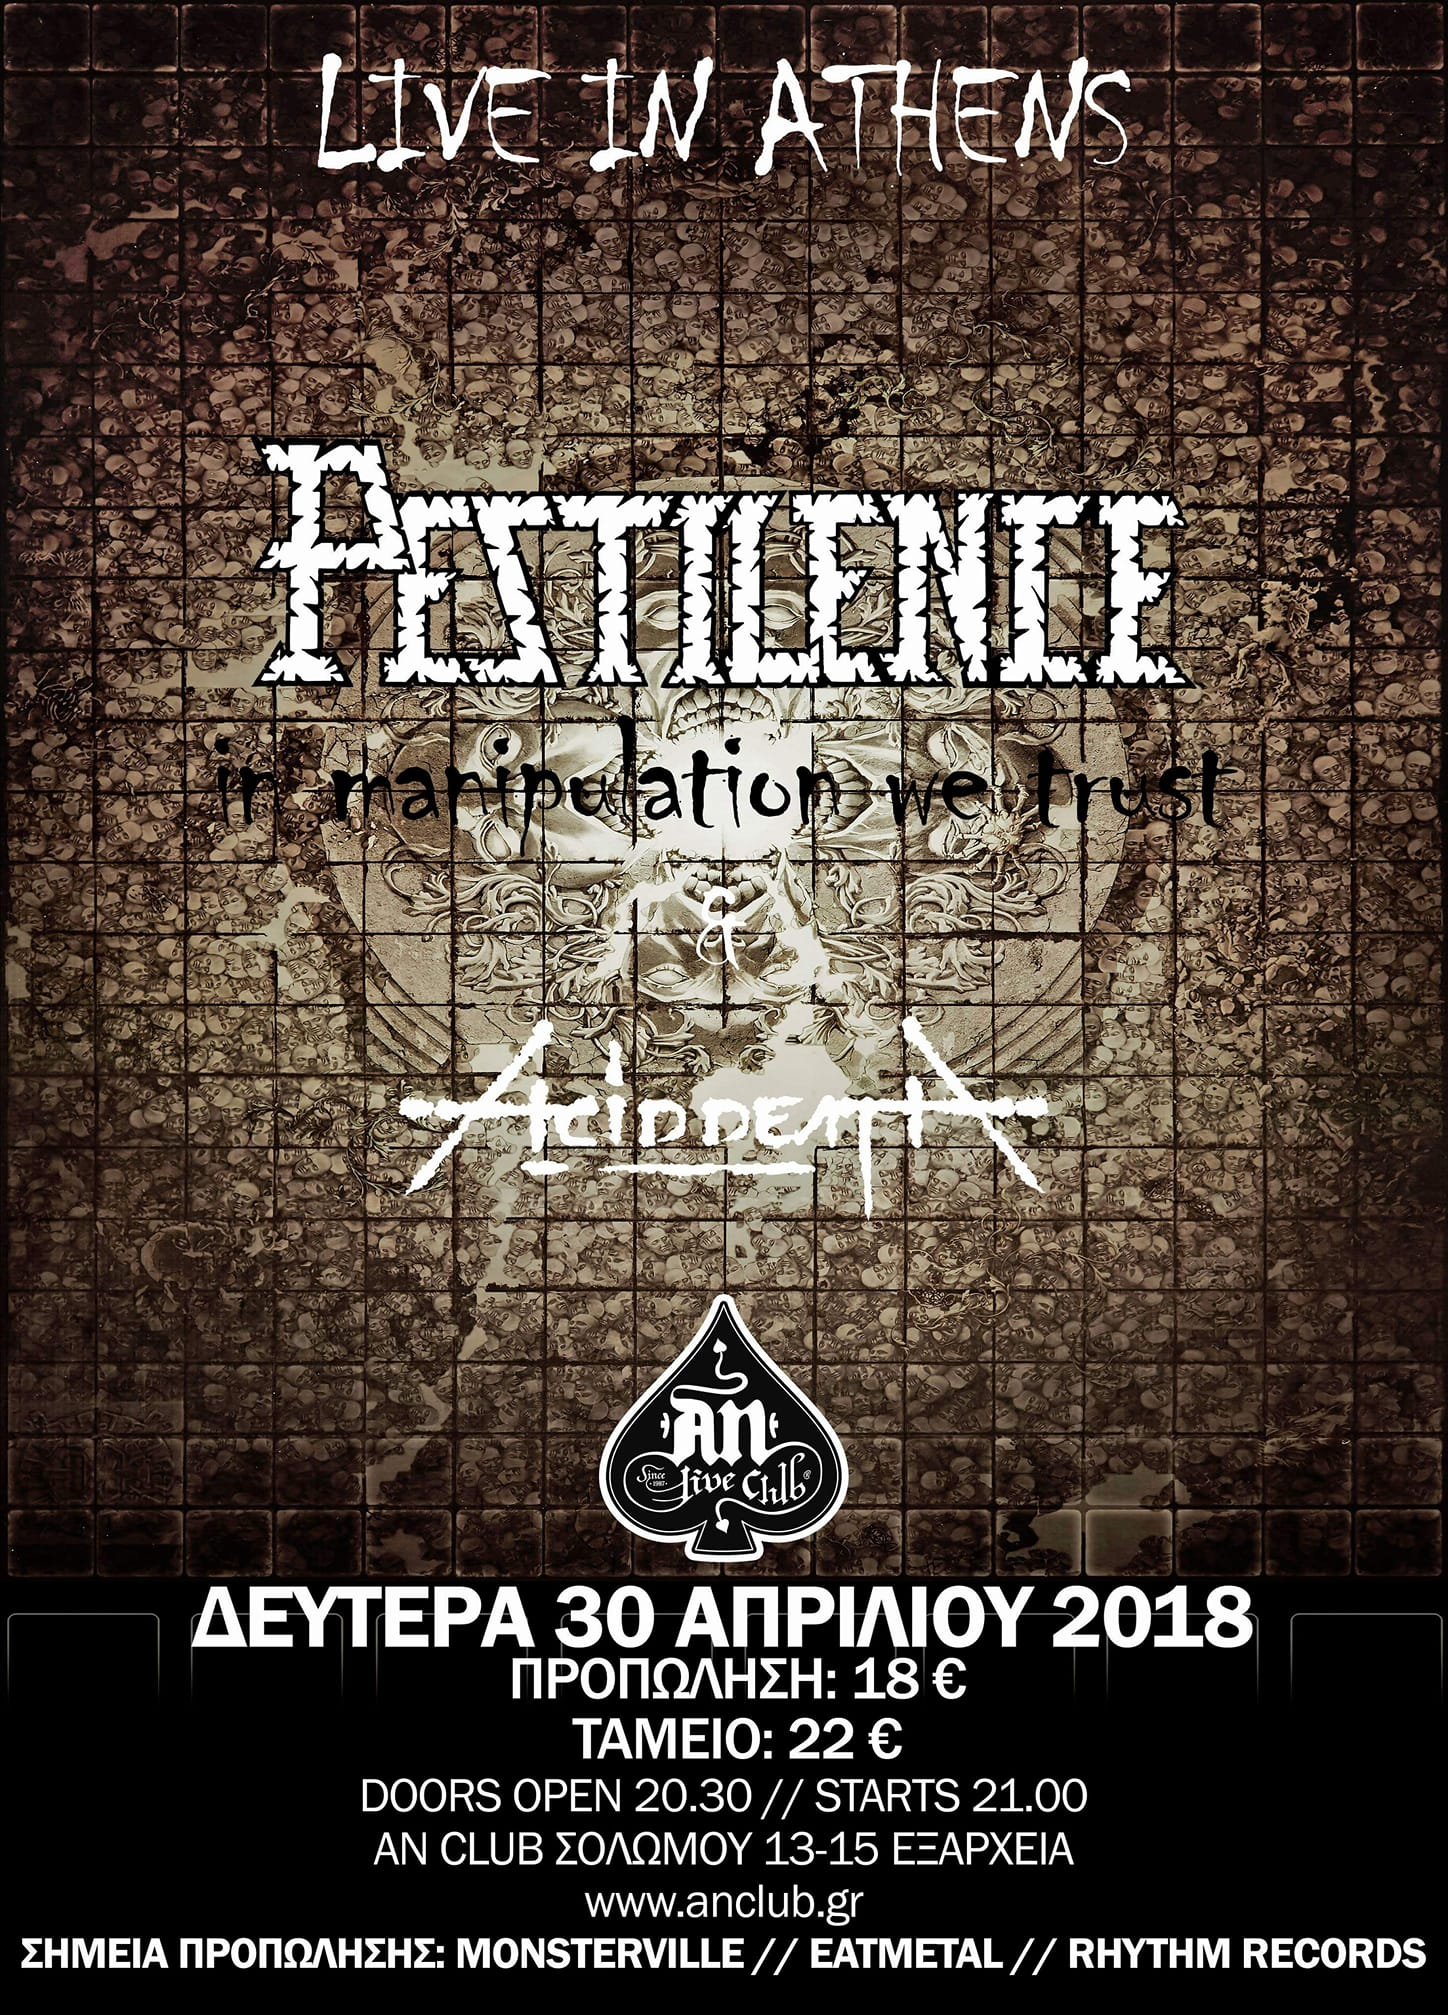 PESTILENCE - ACID DEATH, April 2018